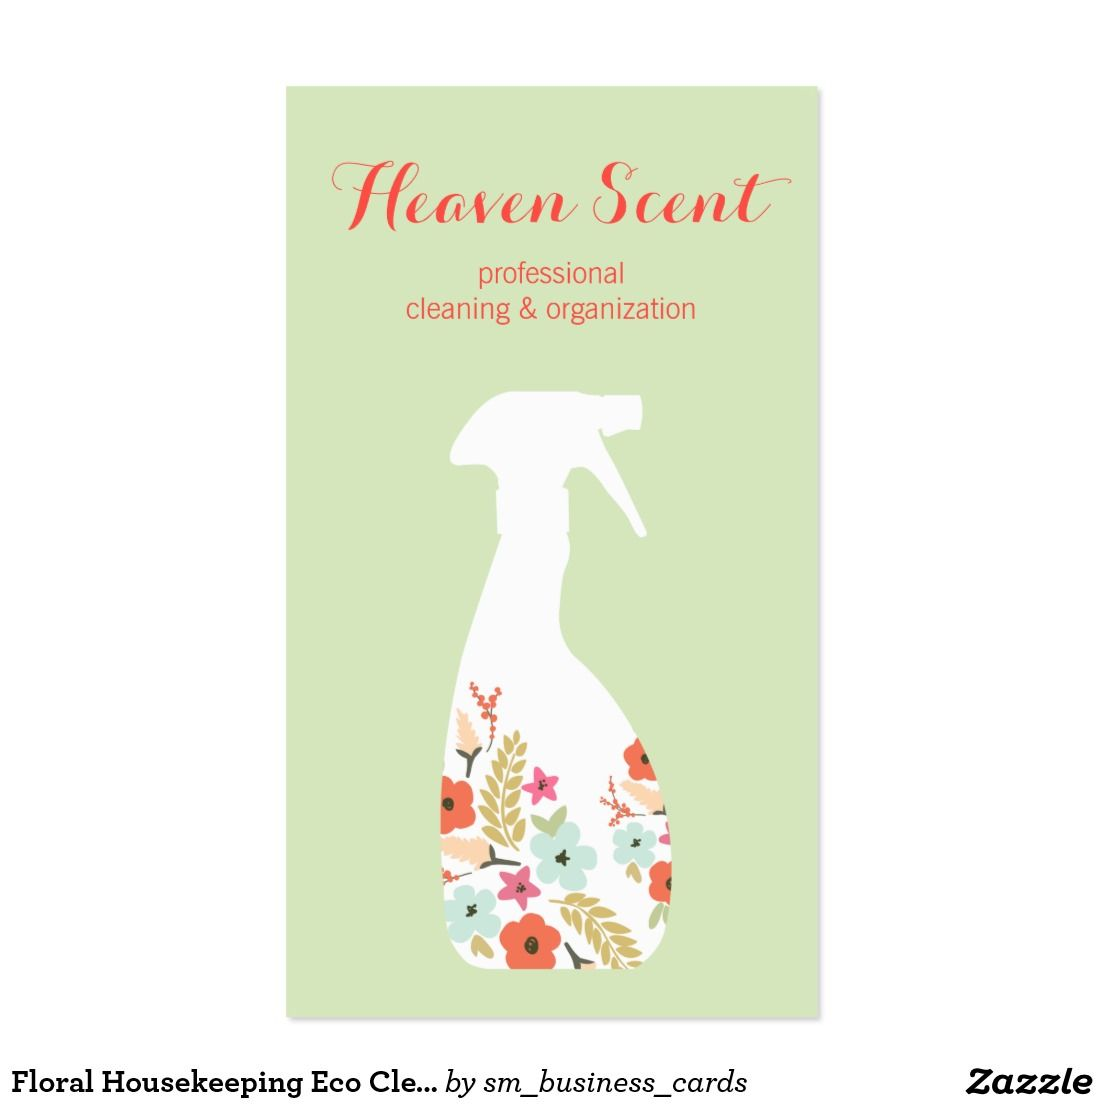 Floral Housekeeping Eco Cleaning Service Business Card | Cleaning ...